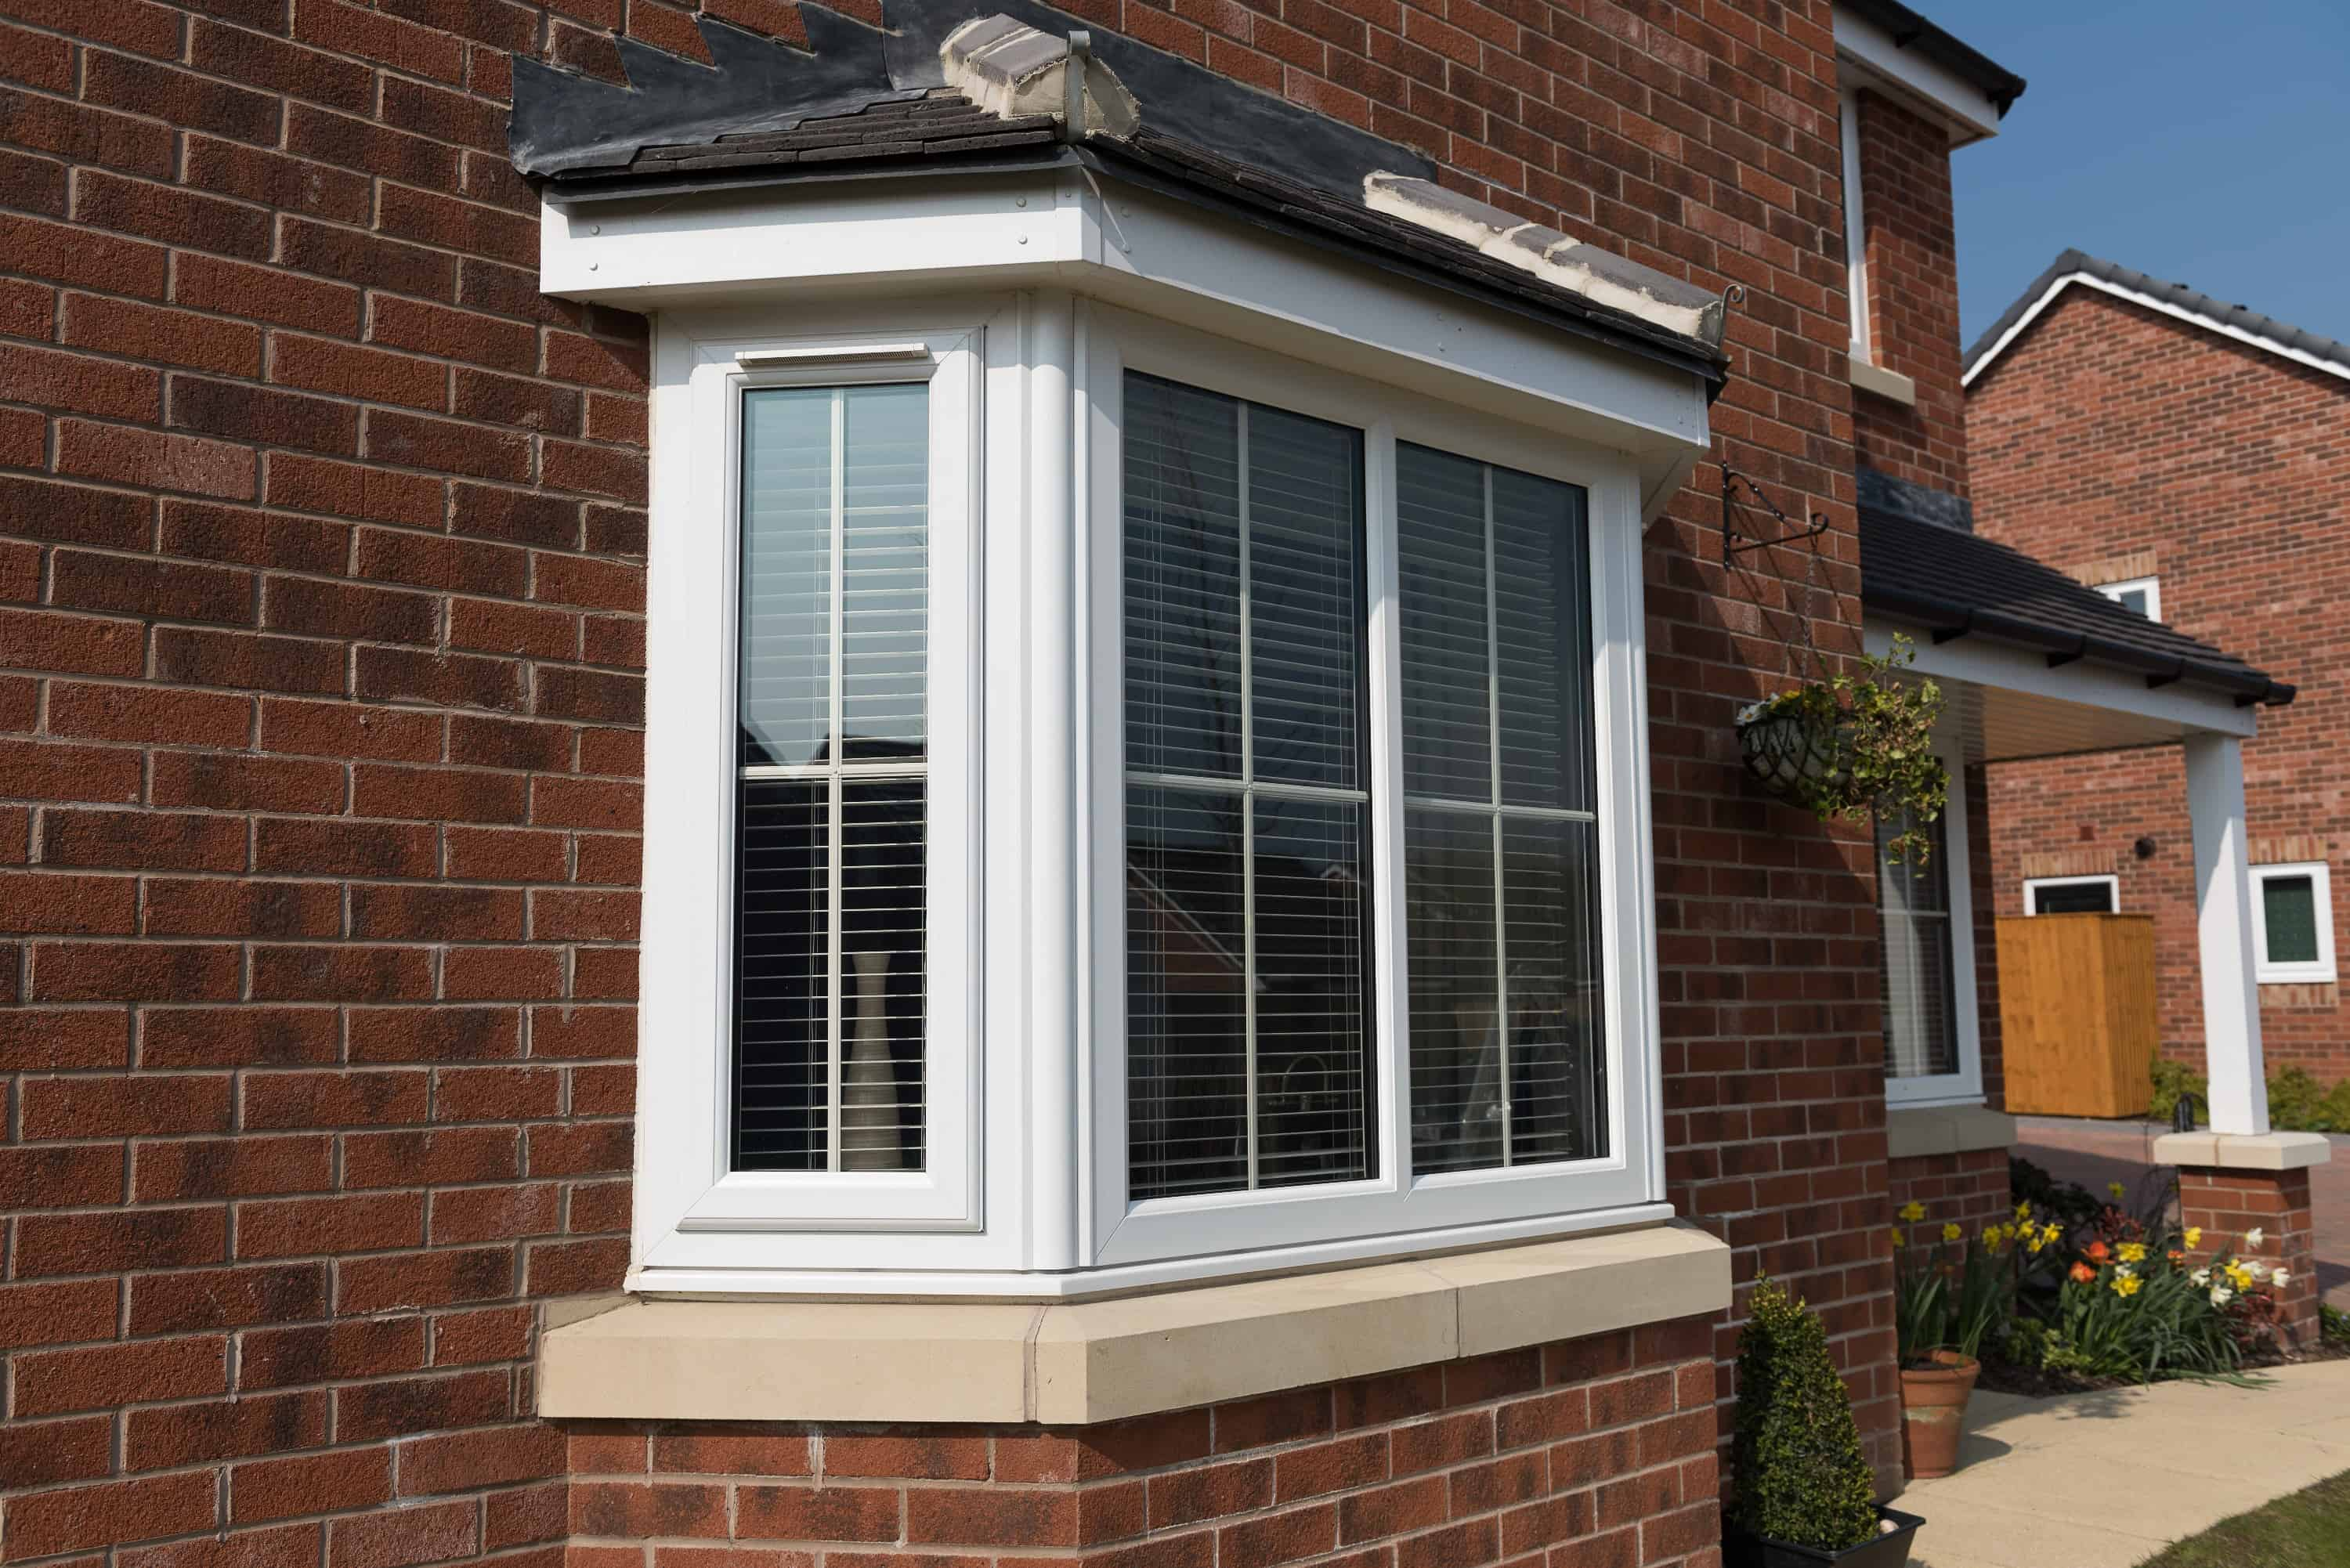 Liniar uPVC Bay Window